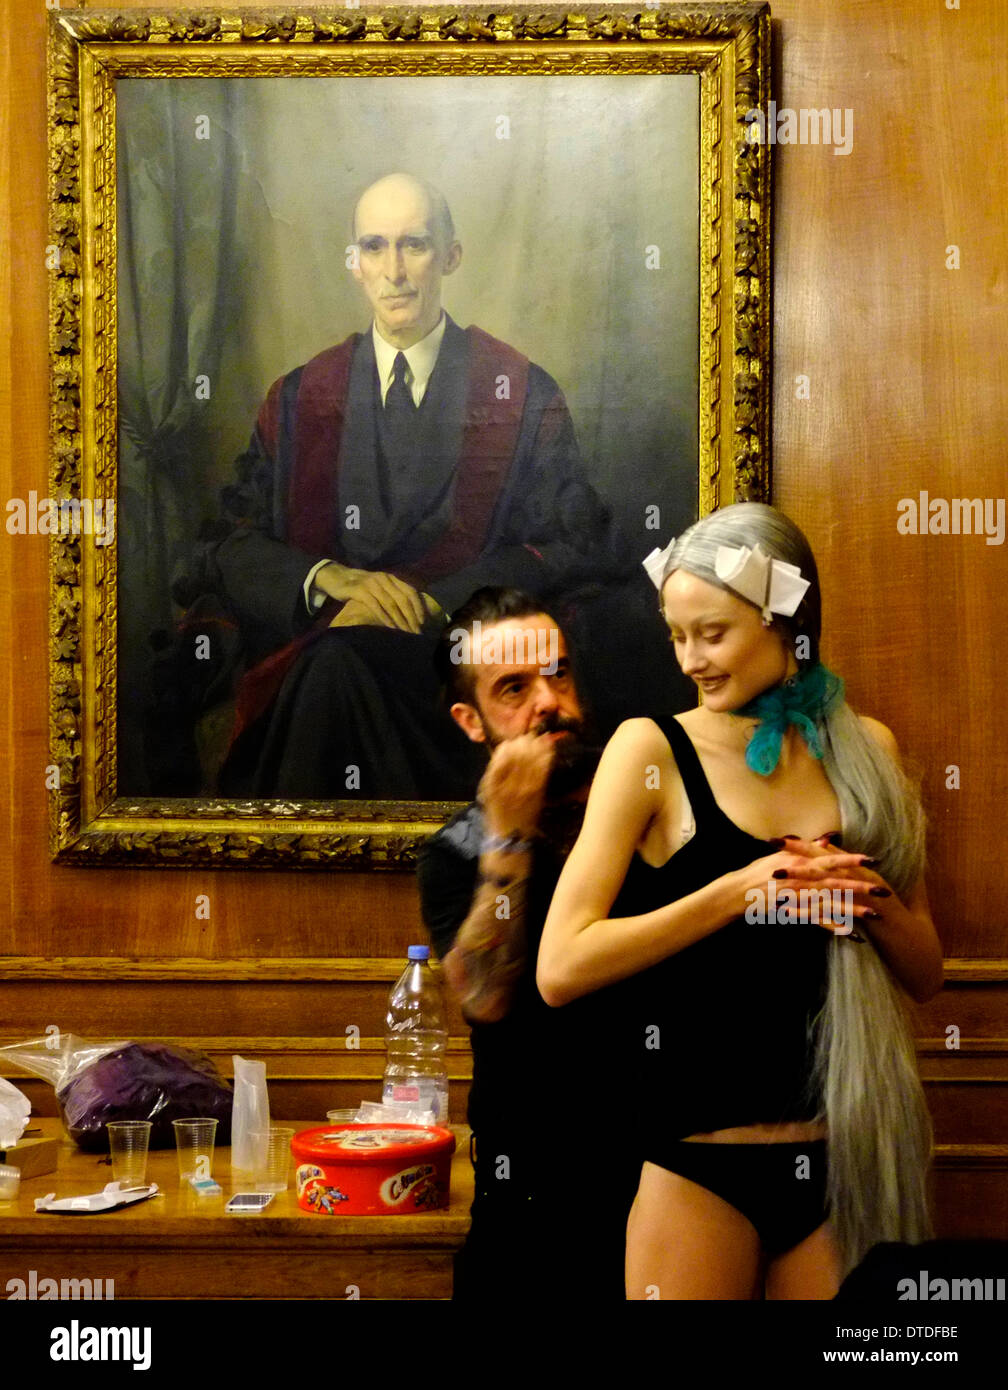 Sorapol A/W 14 show at Royal College of Surgeons London. - Stock Image